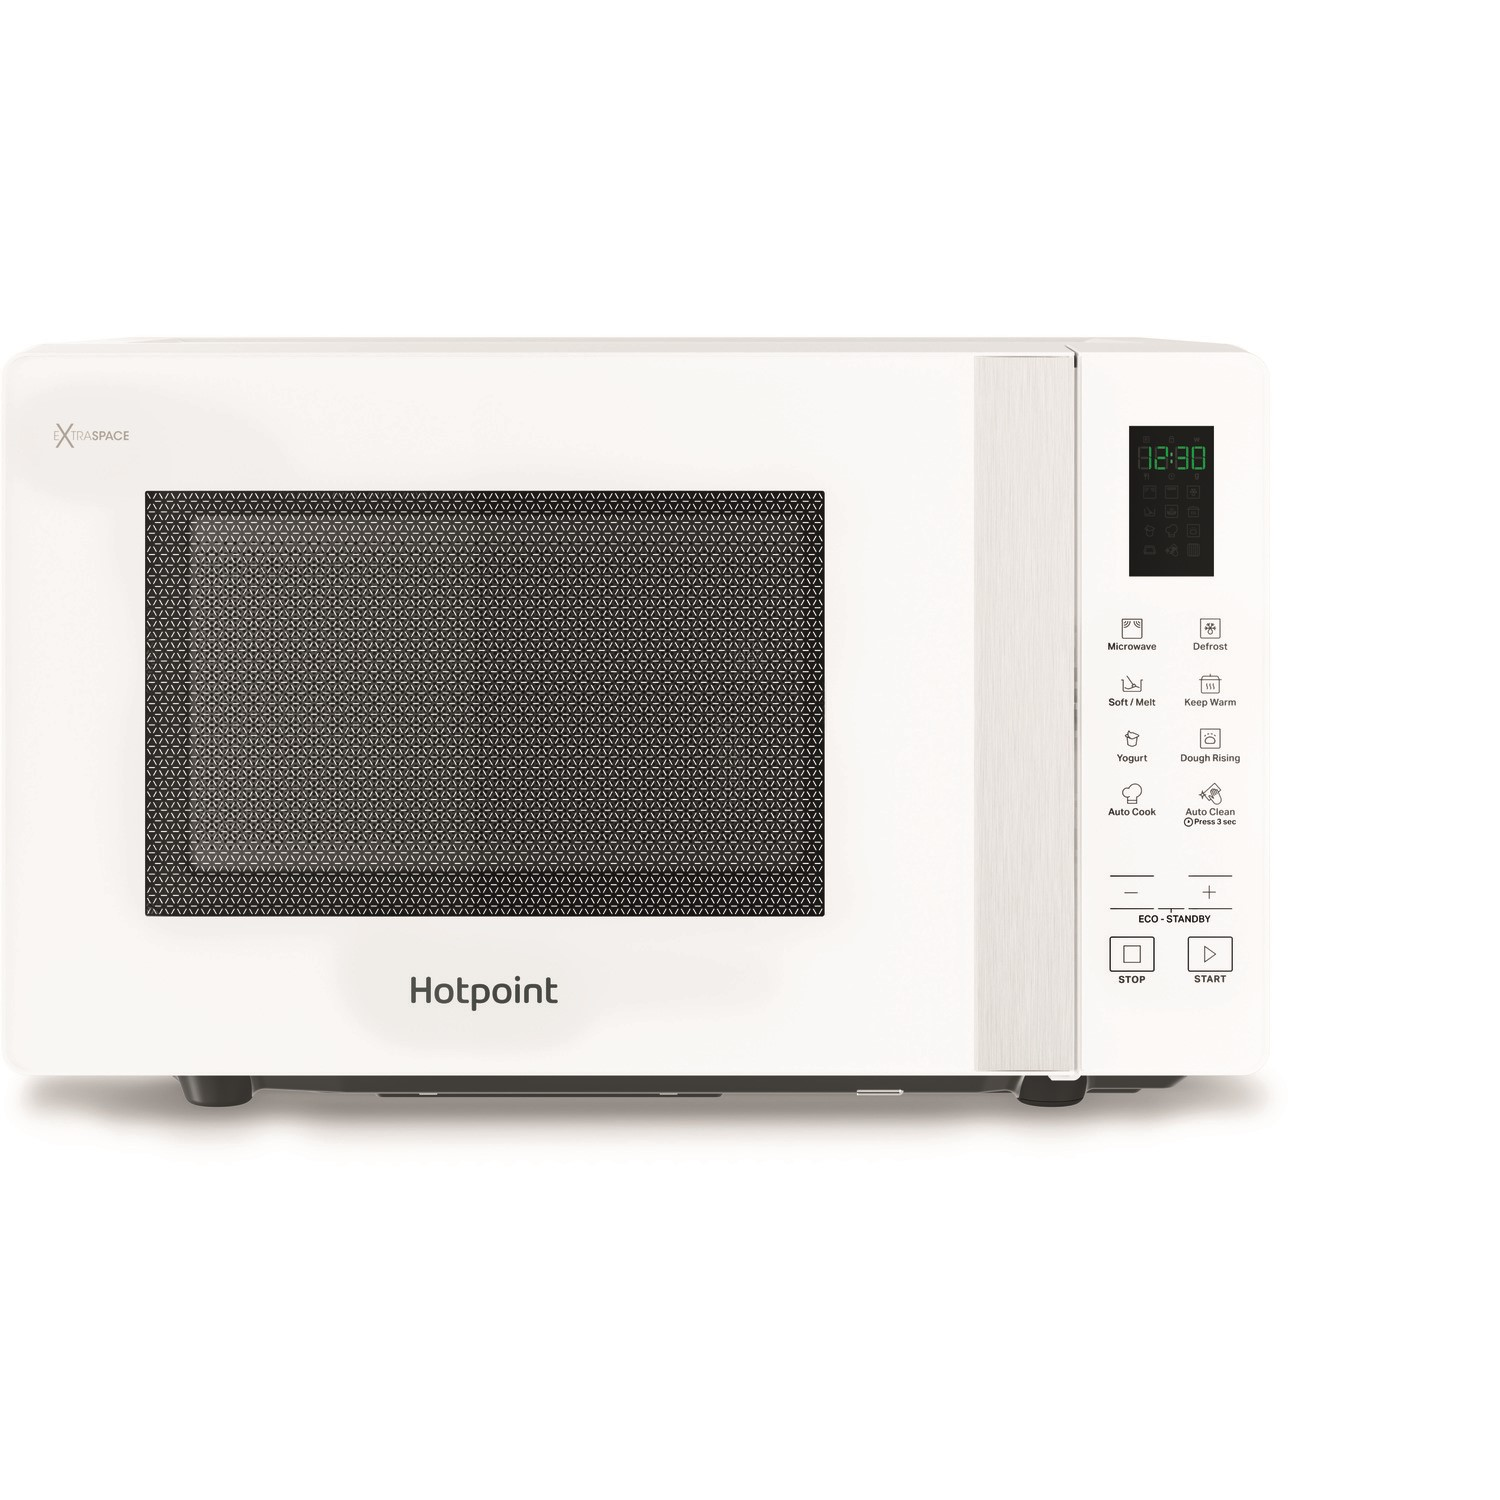 hotpoint mwhf201w xtraspace flatbed 20l microwave oven white